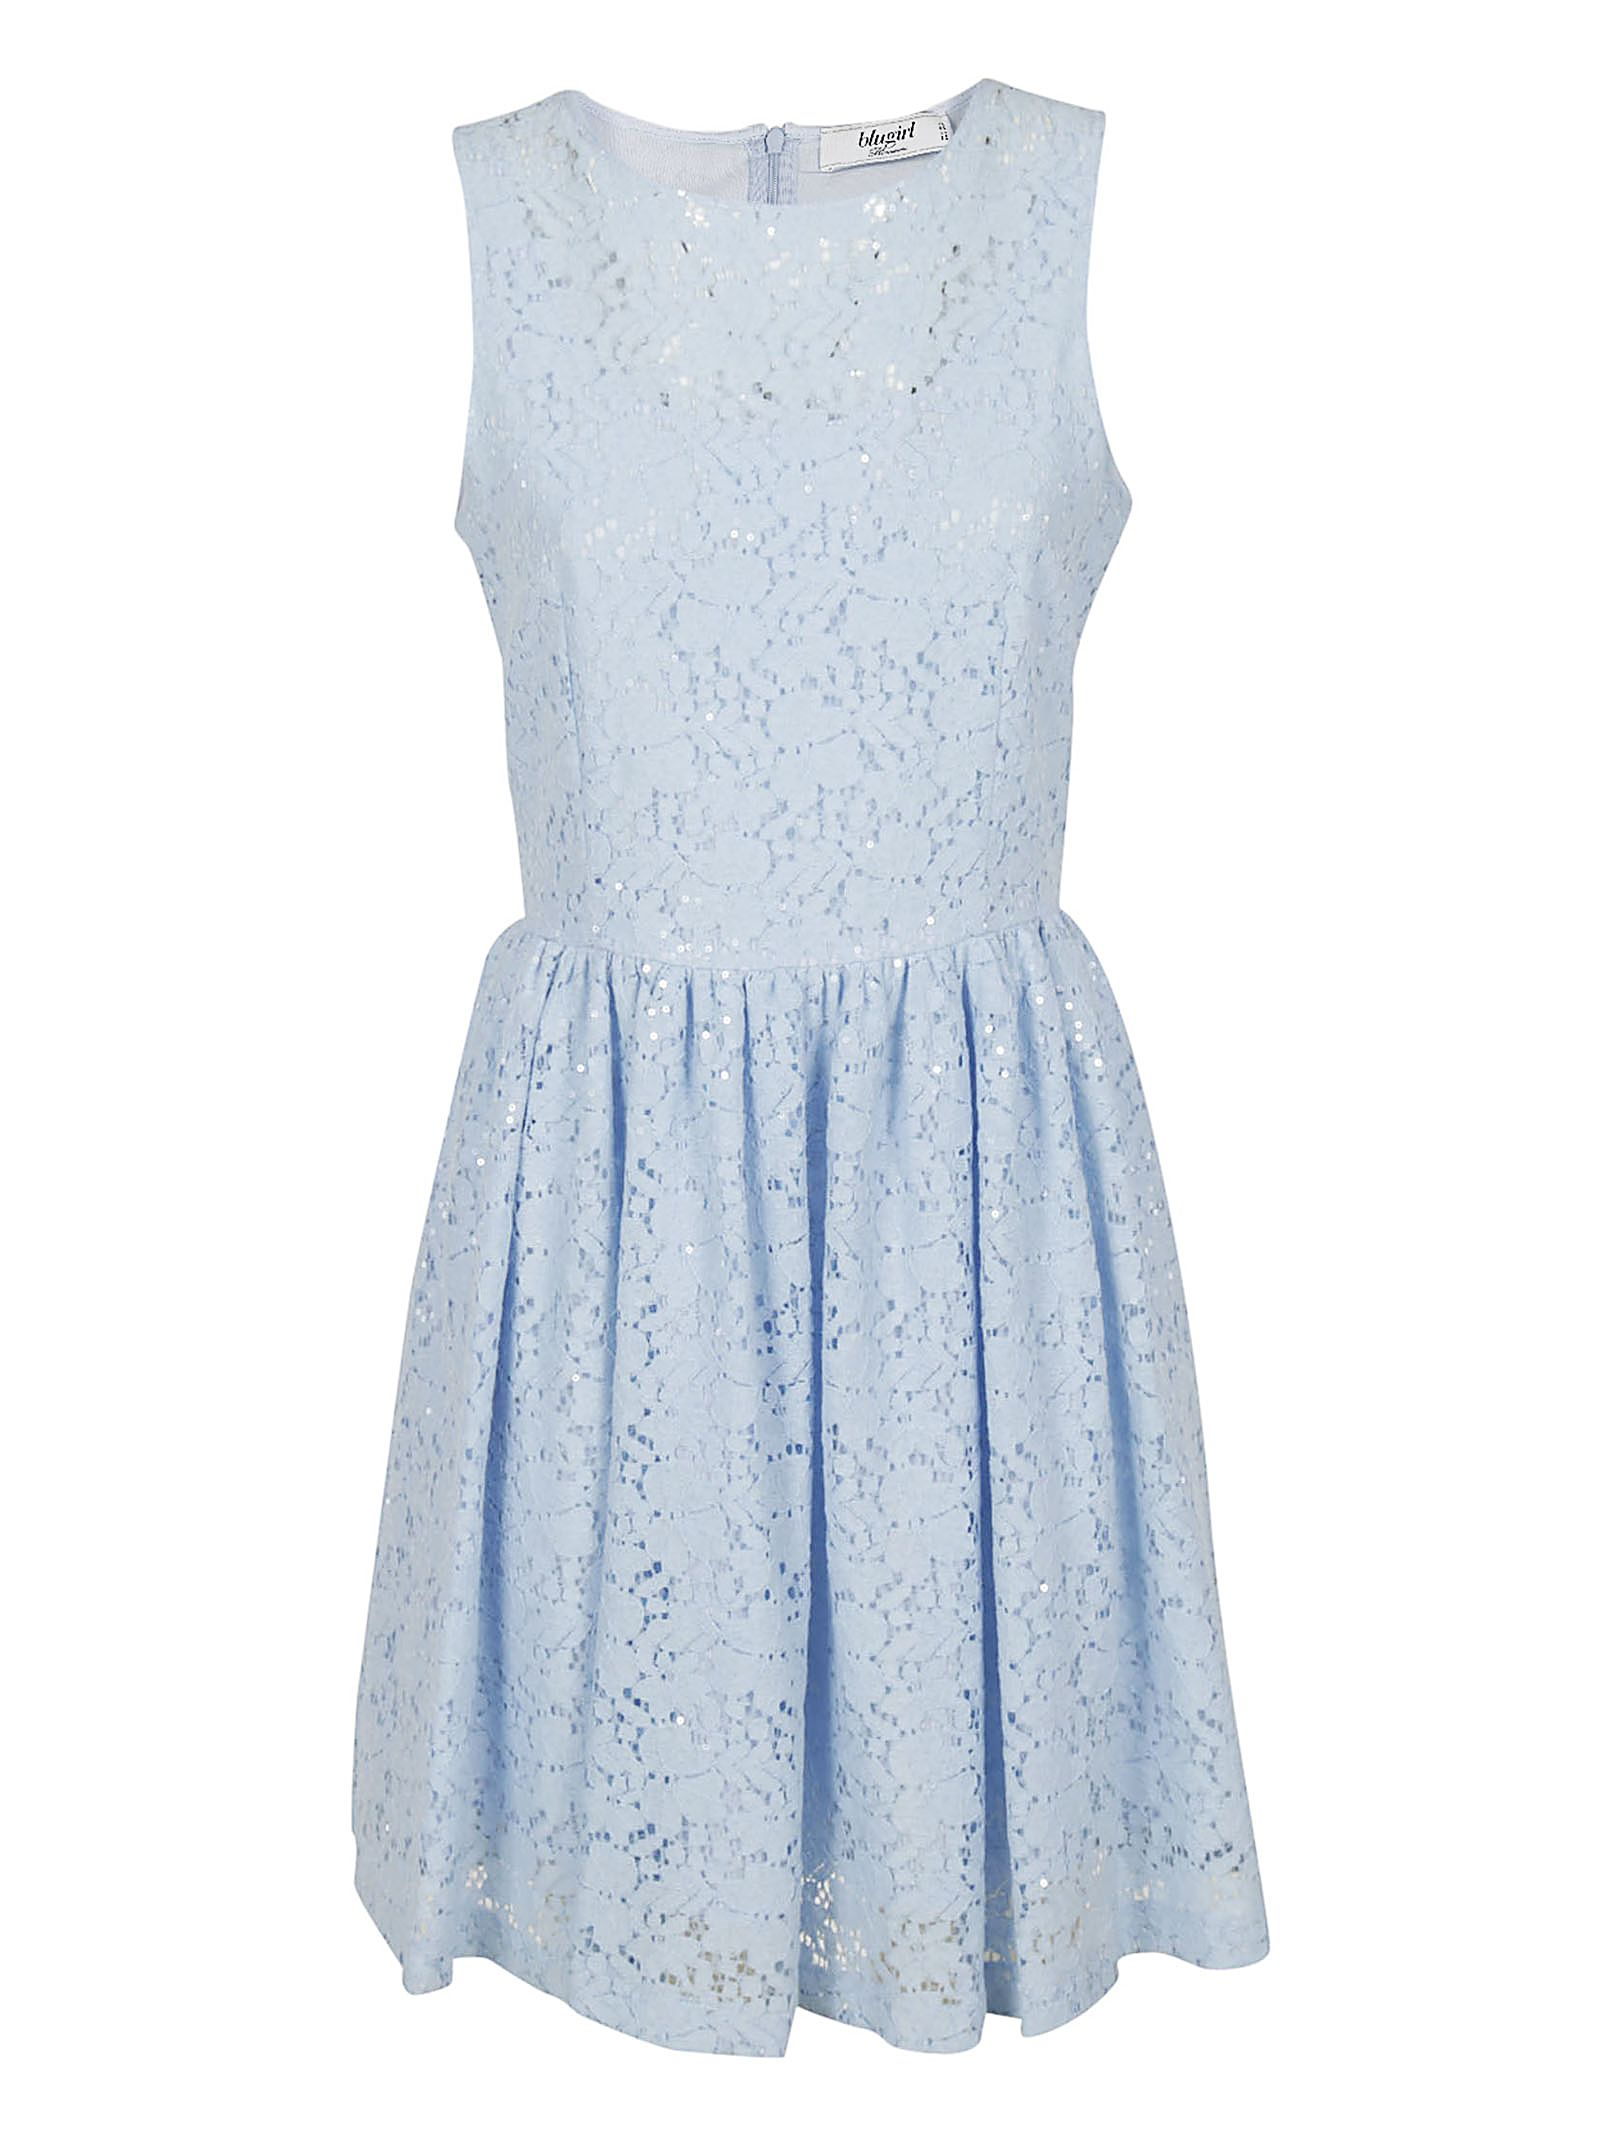 Blugirl Blugirl Lace Dress